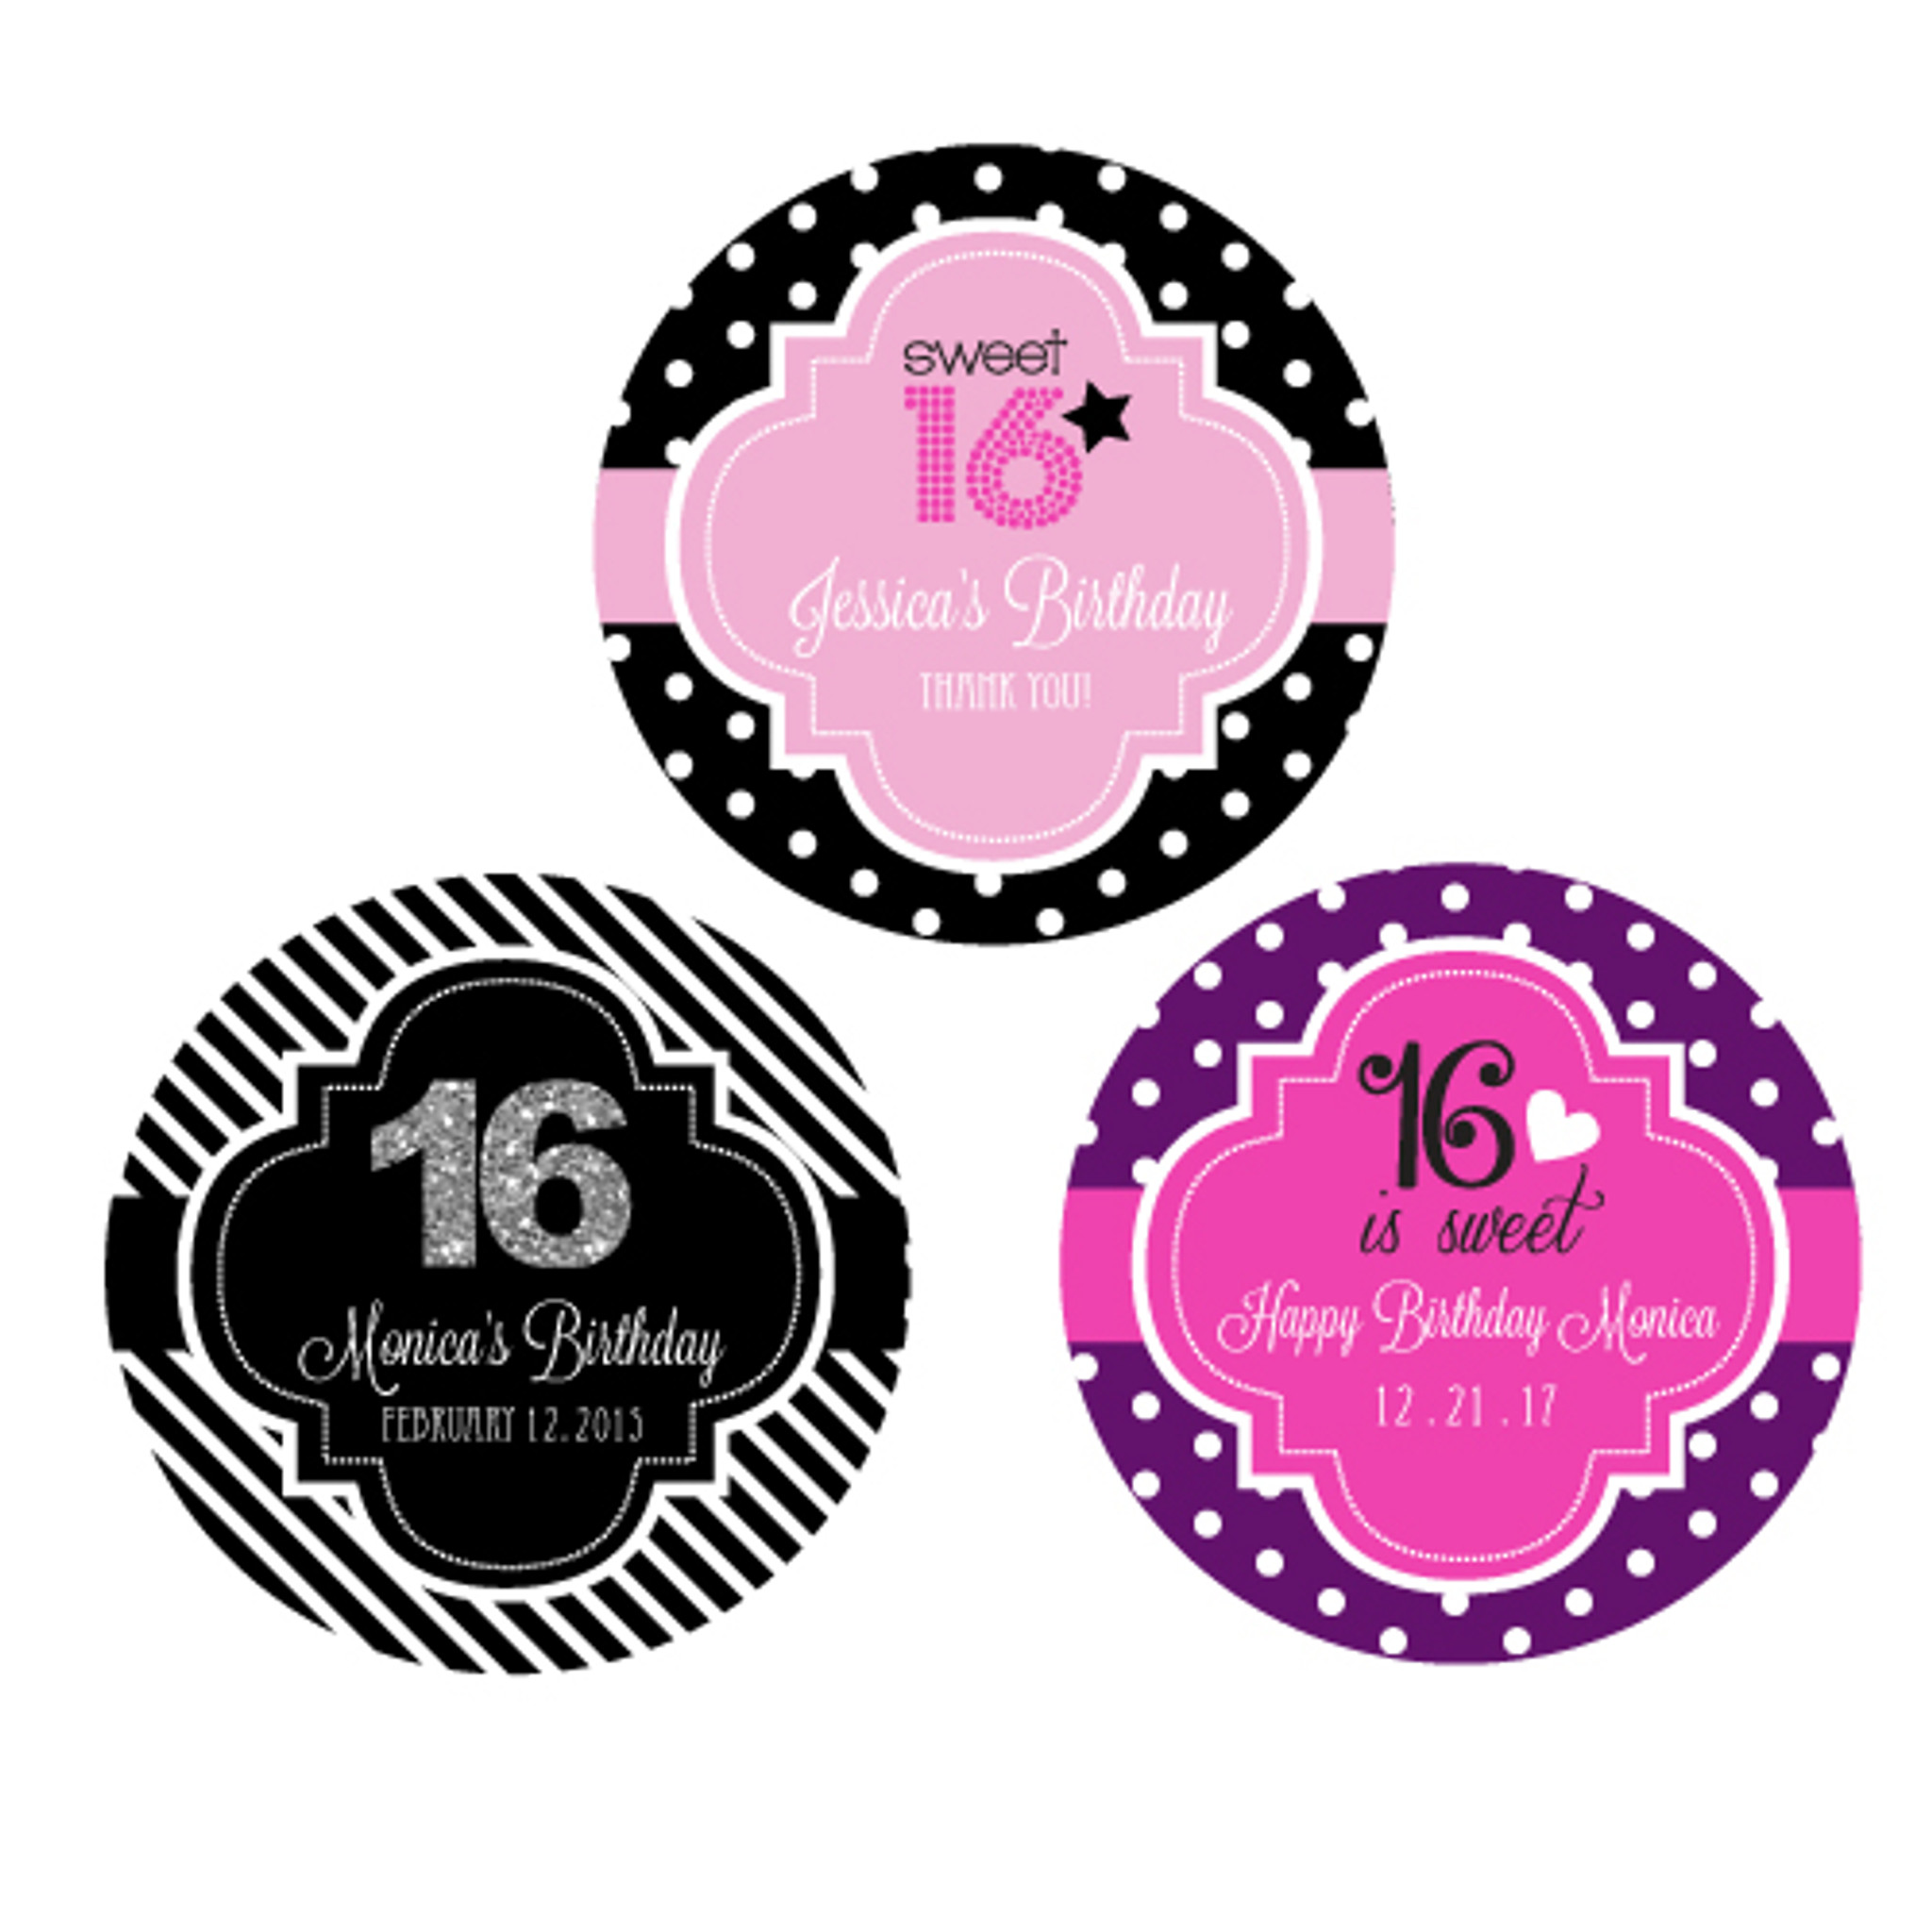 sweet sixteen personalized favor labels quinceanera stickers sweet 16 favor labels 48ct